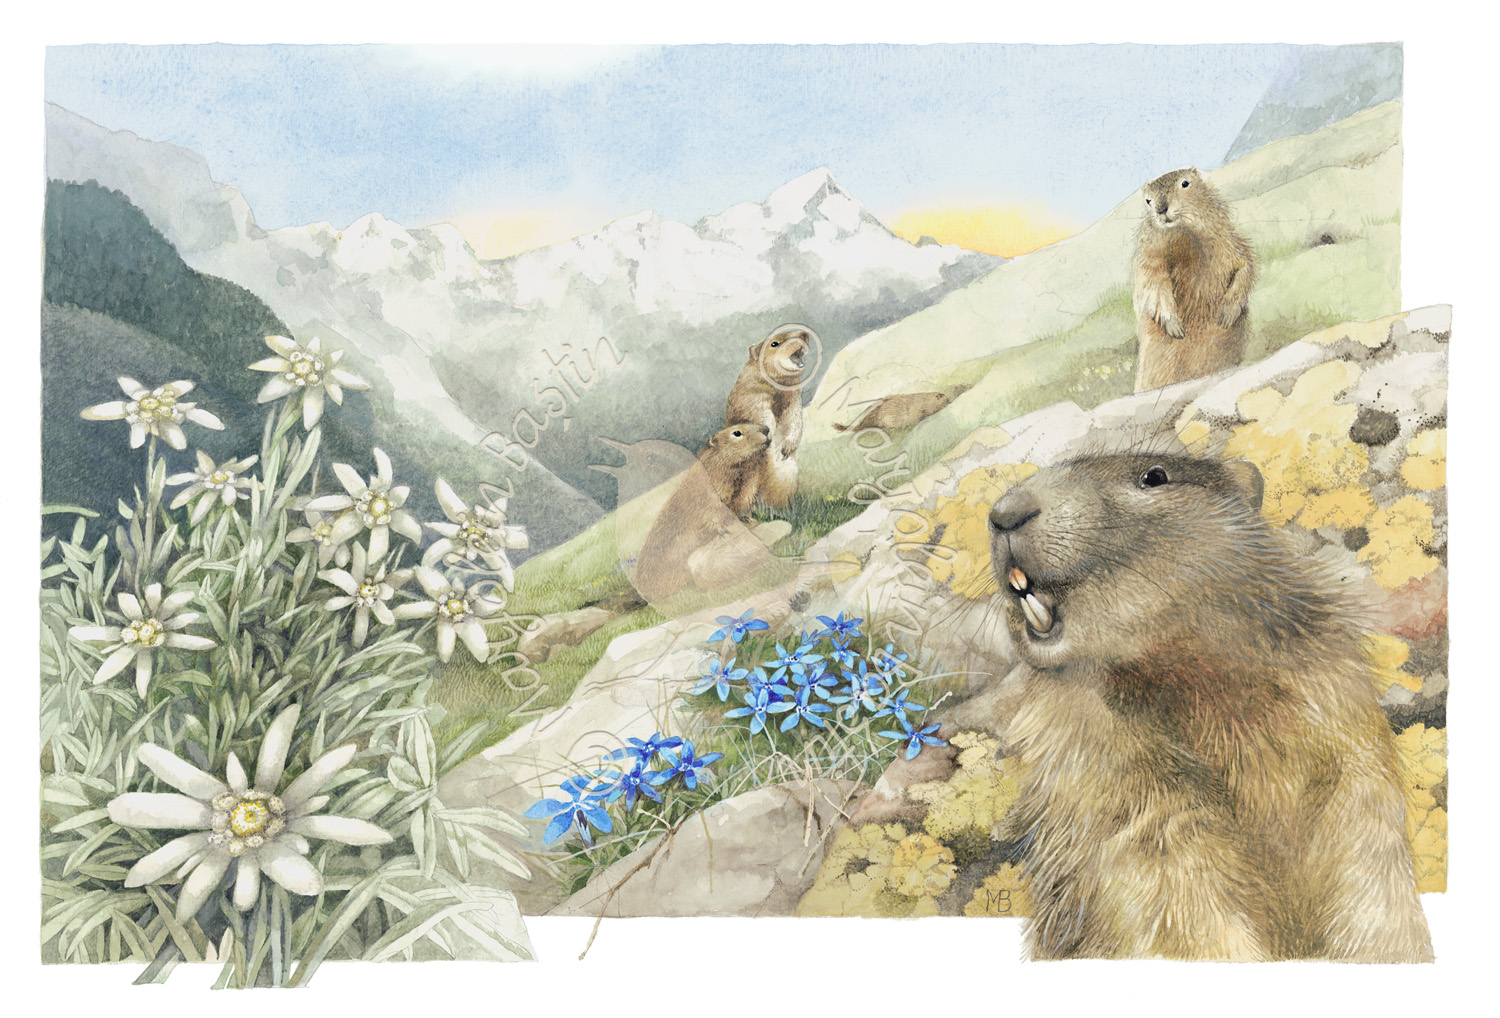 Call of the Alpine Marmot